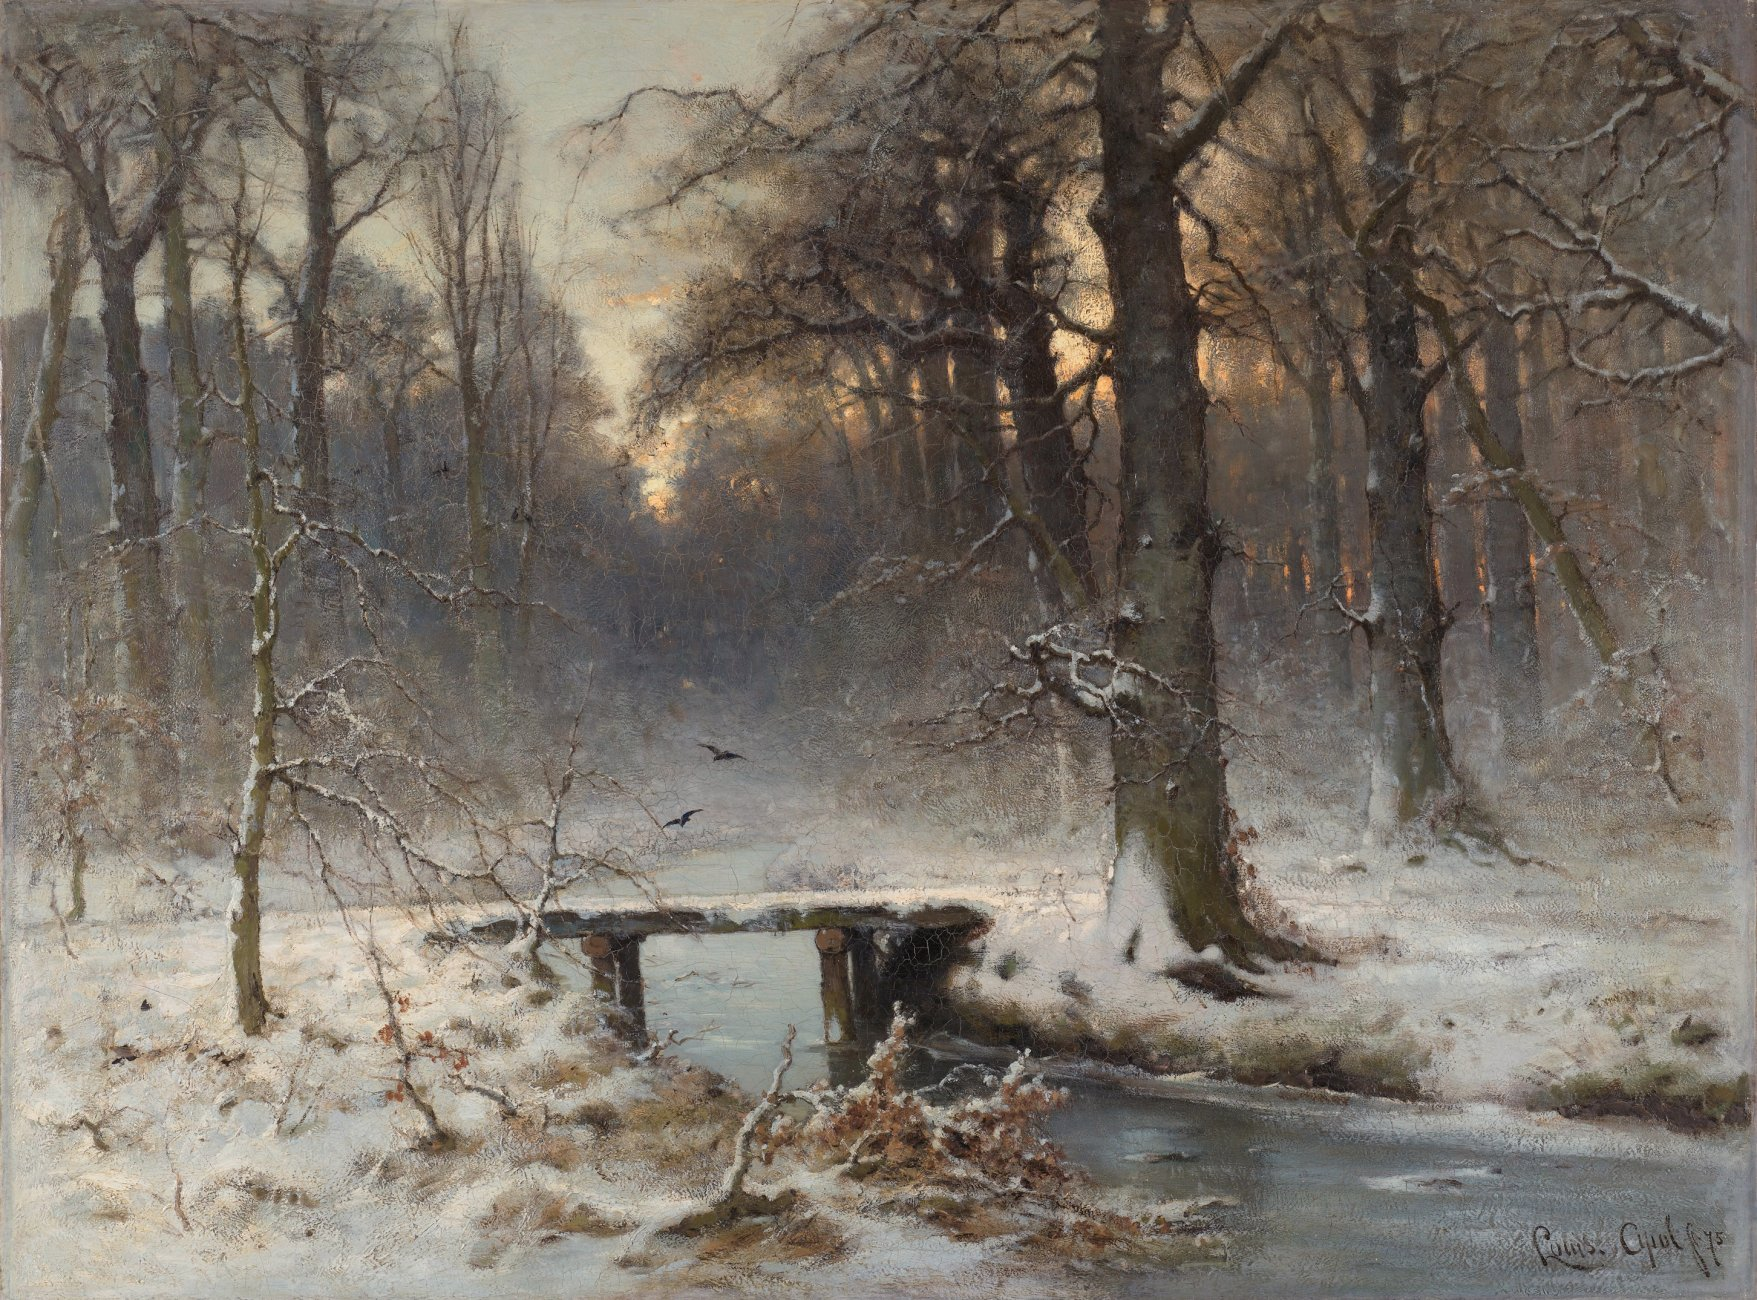 A_January_evening_in_the_Haagse_Bos,_by_Louis_Apol_(1850–1936).jpg